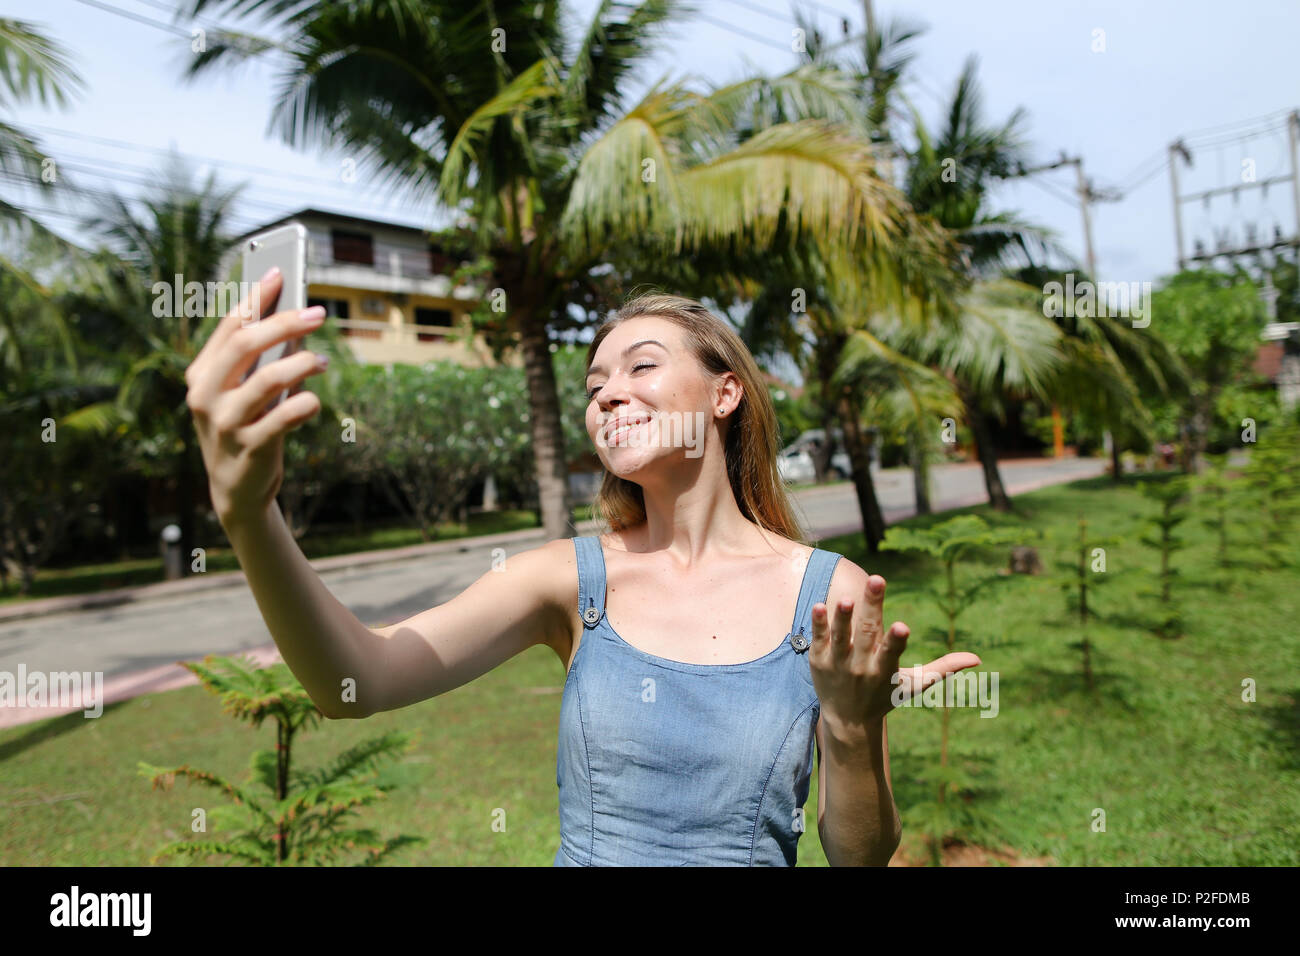 Young pretty girl making selfie by smarthone near palm trees in background. - Stock Image